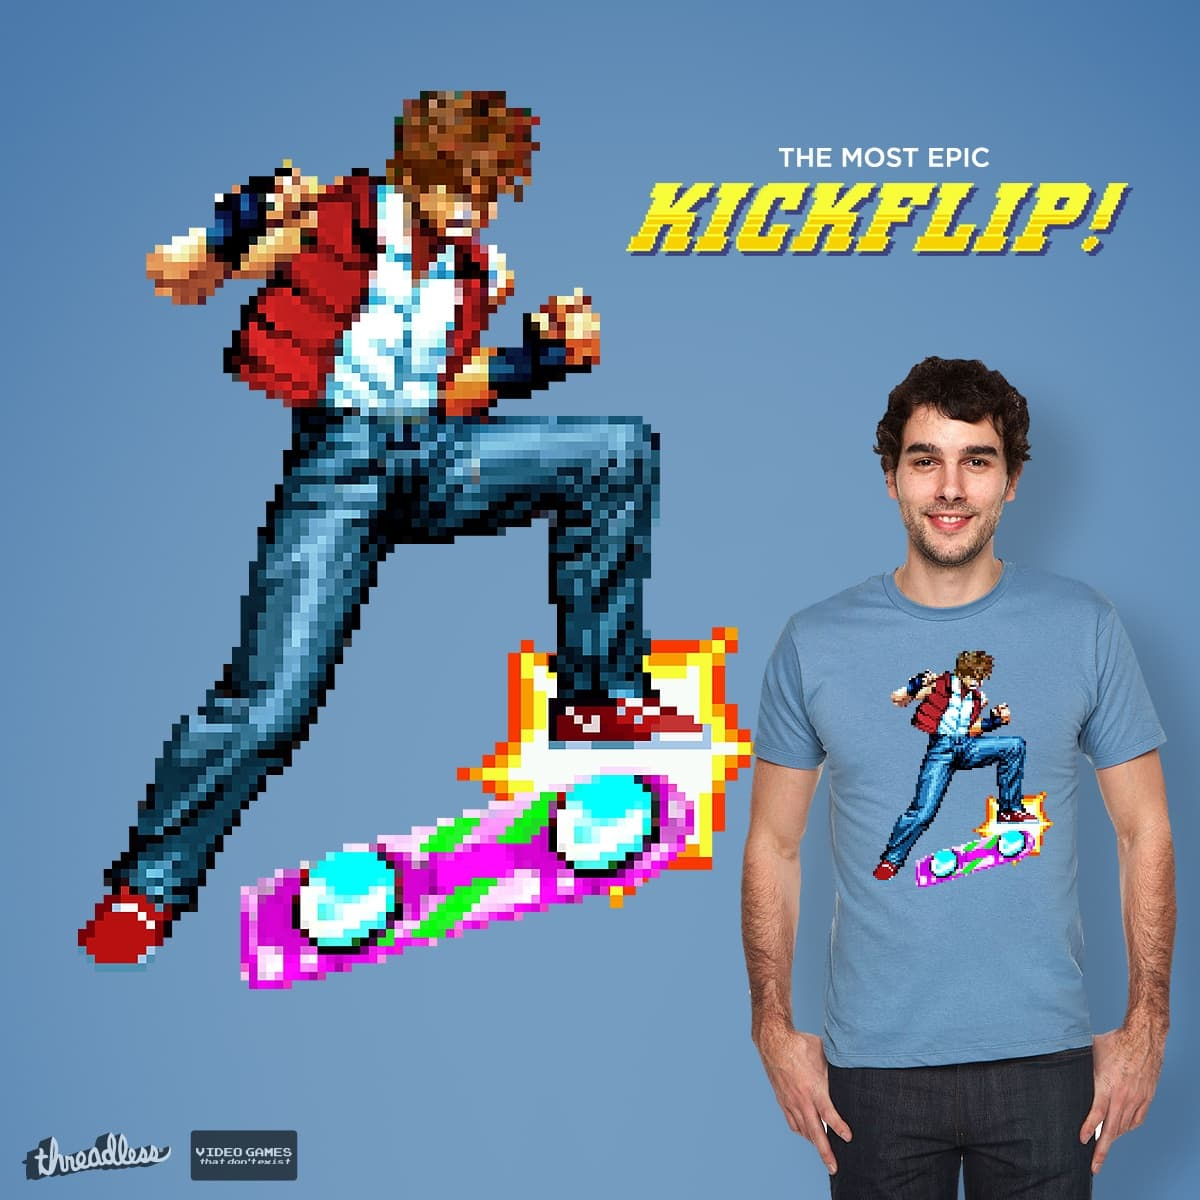 The most epic kickflip! by astro_naut on Threadless